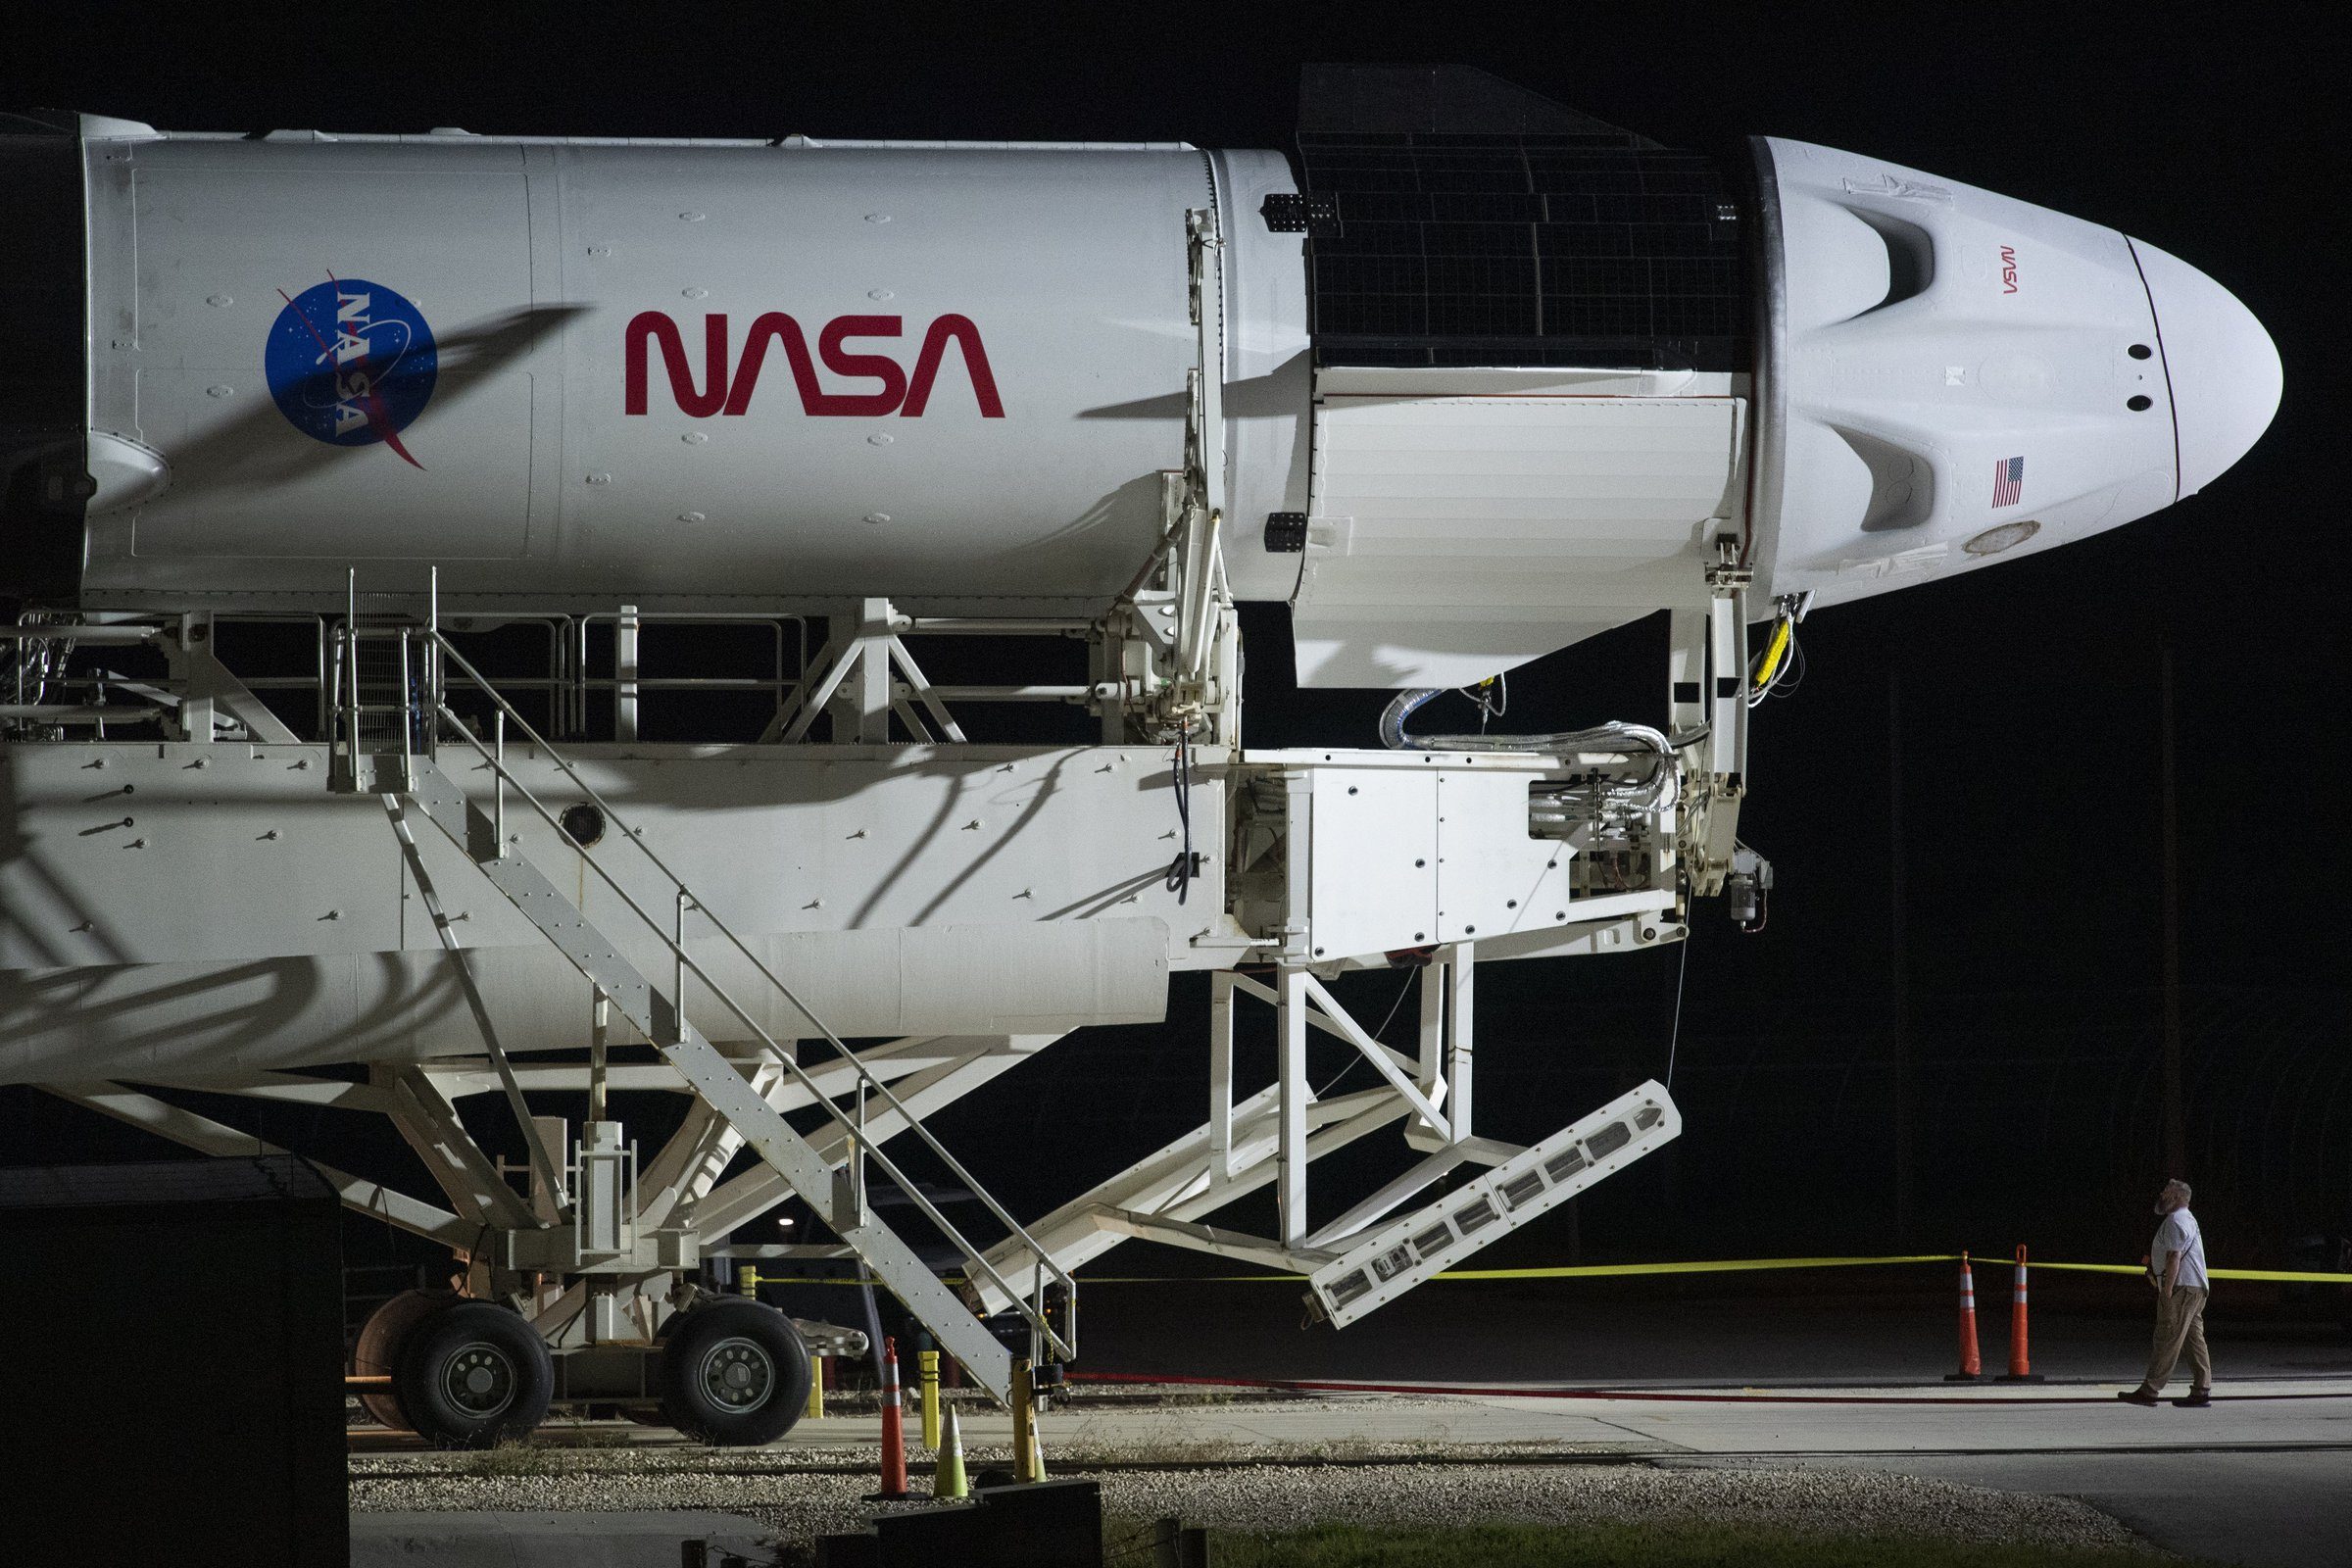 Earthly issue confronts SpaceX